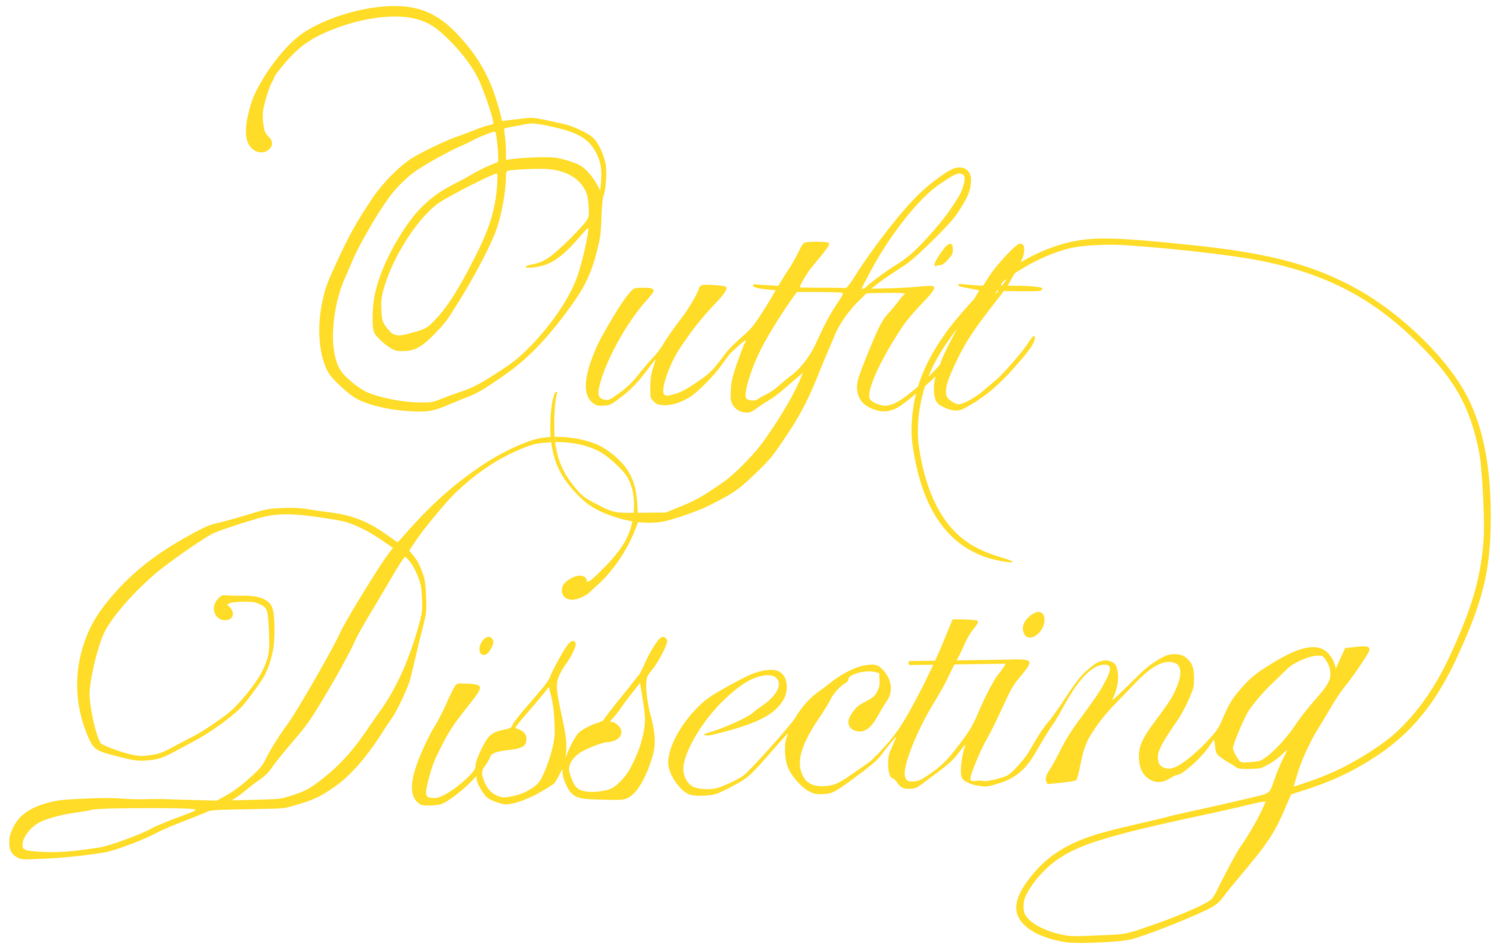 outfit dissecting